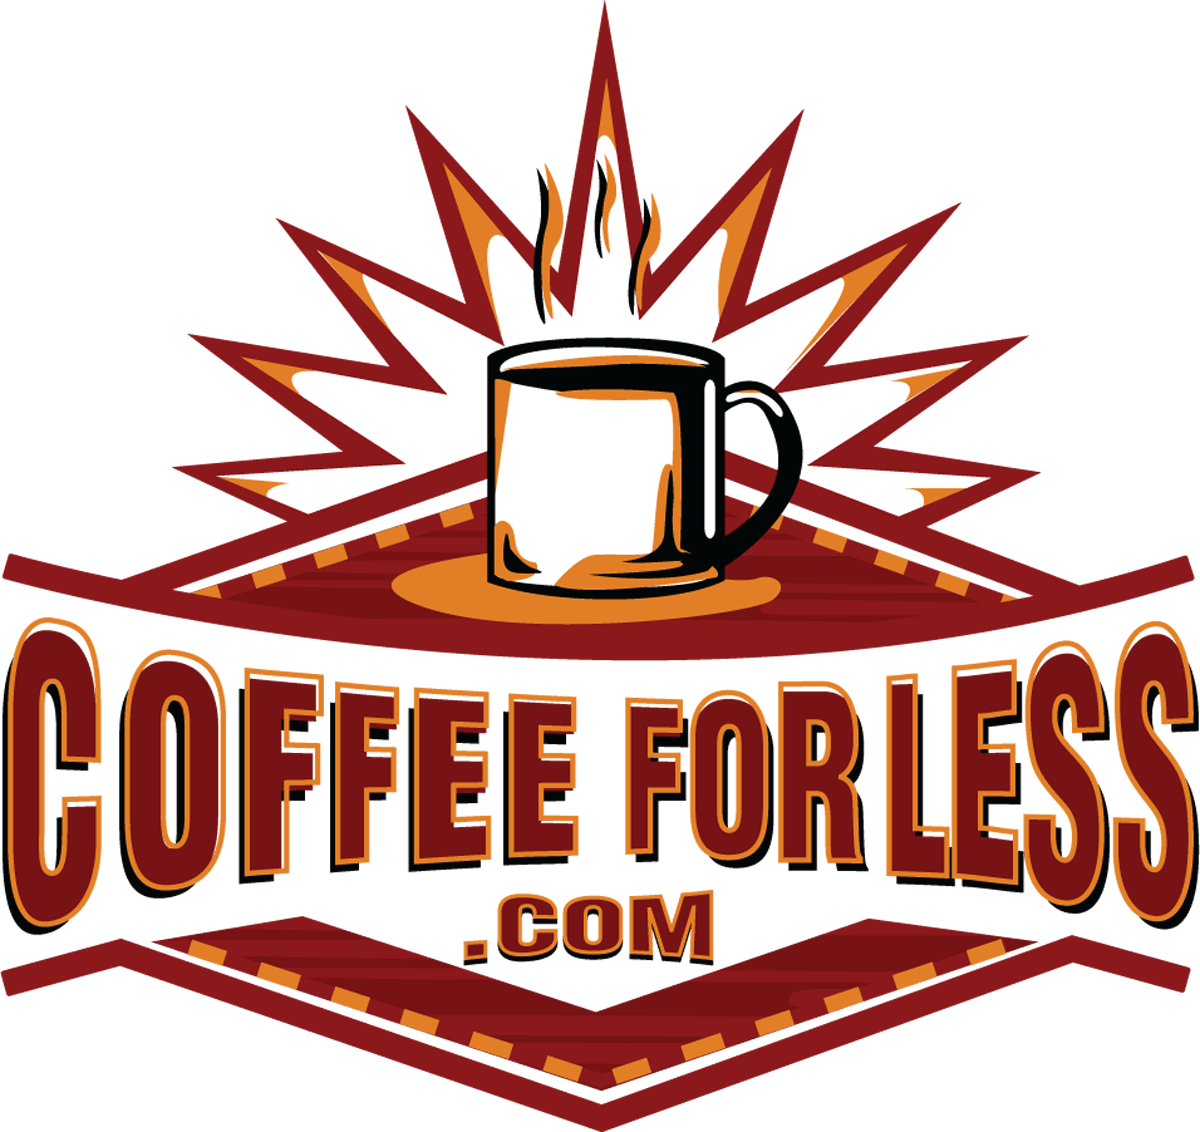 Coffee For Less - Coupon Codes